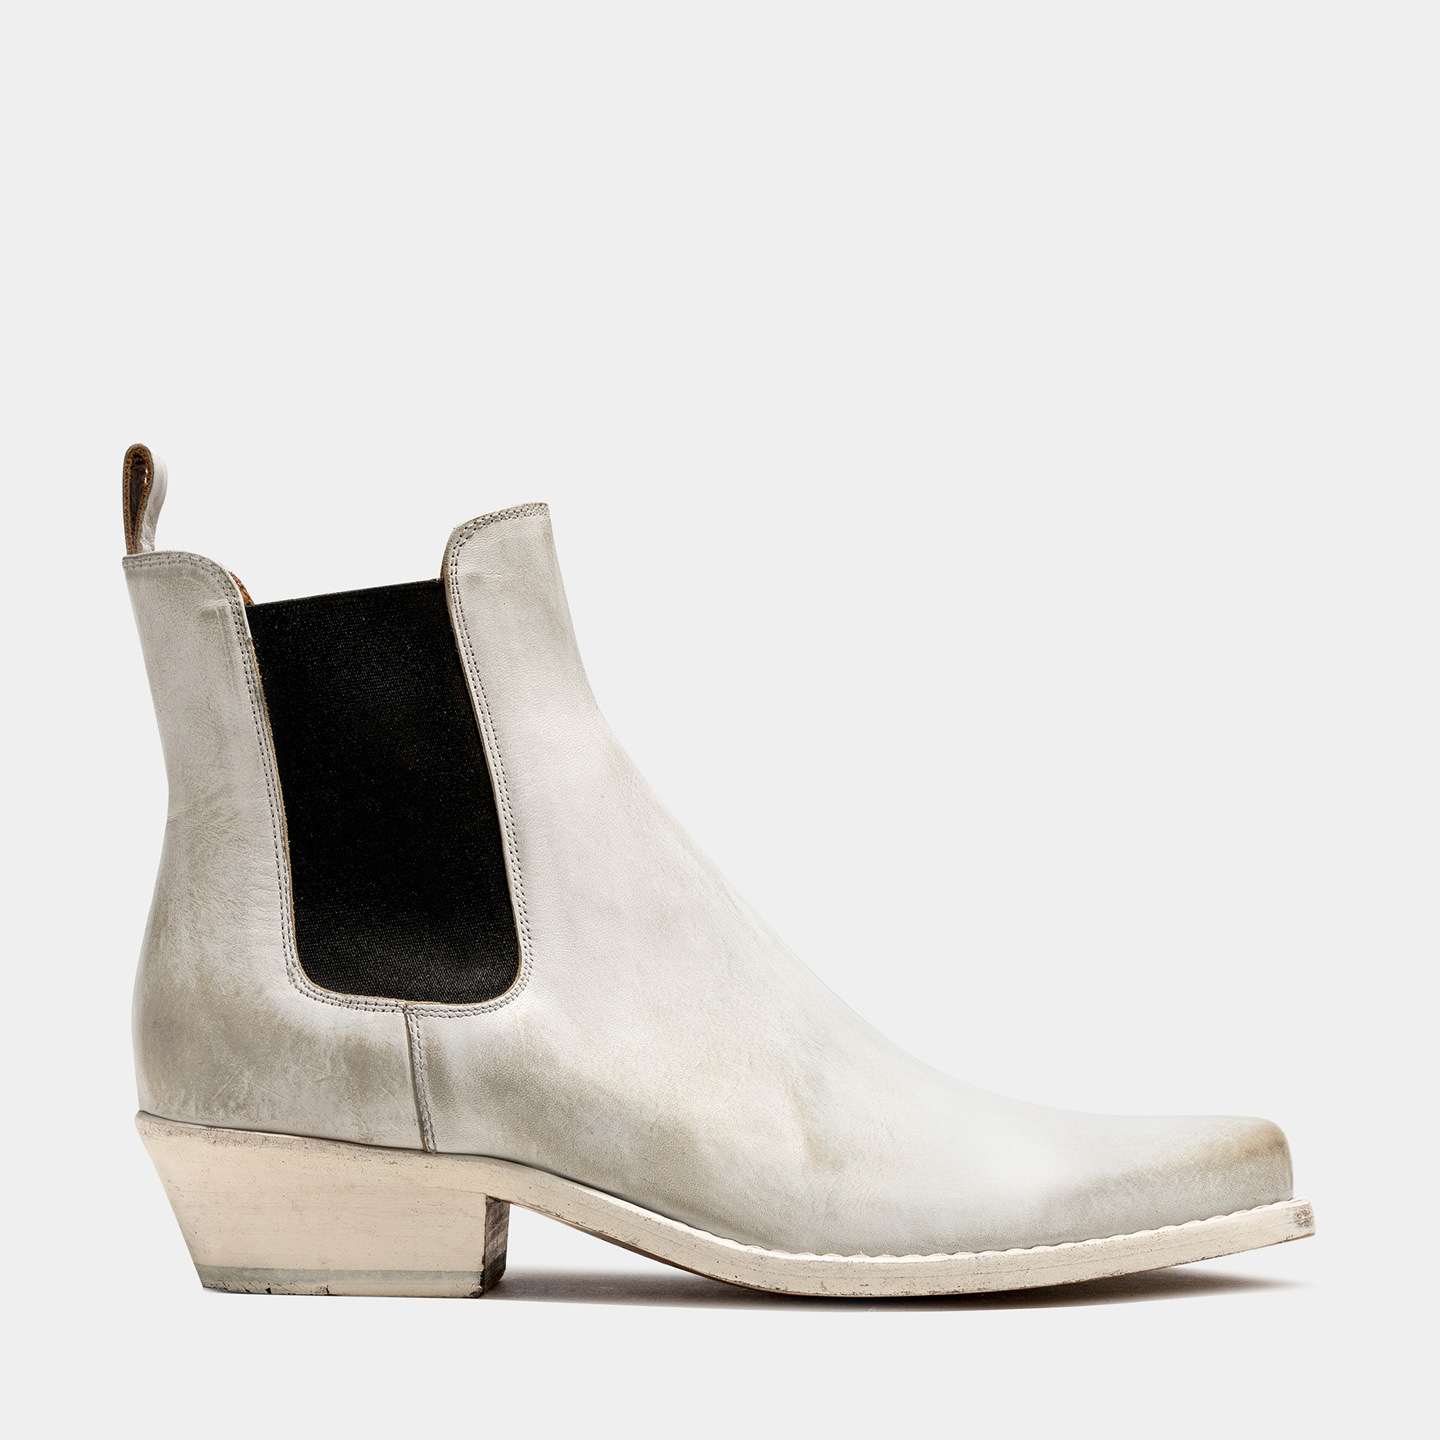 BUTTERO: DALTON? BOOTS IN WHITE LEATHER